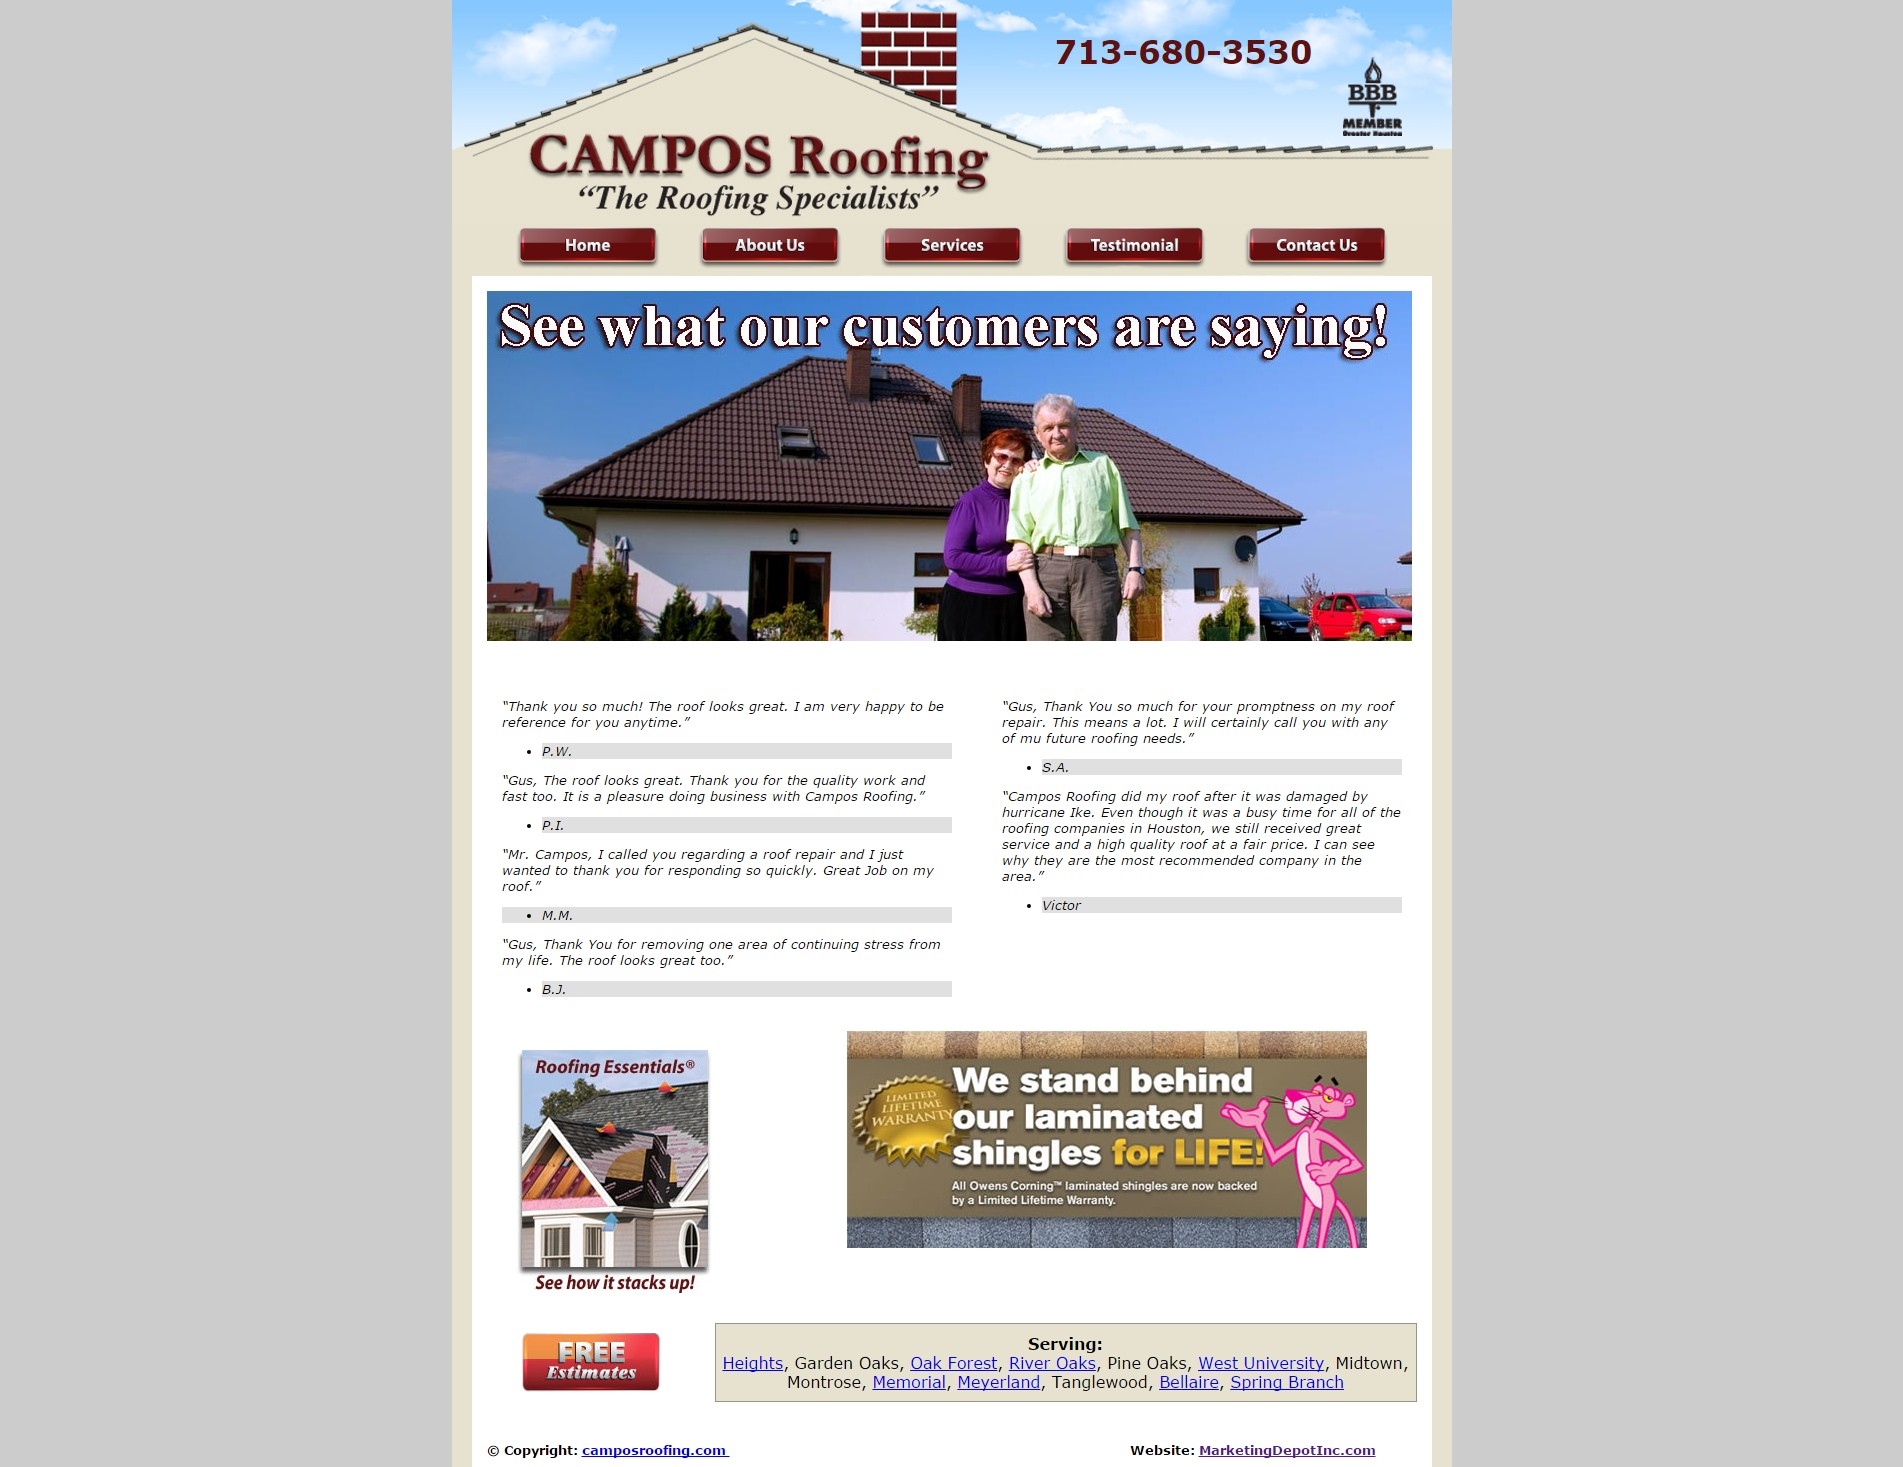 Campos Roofing